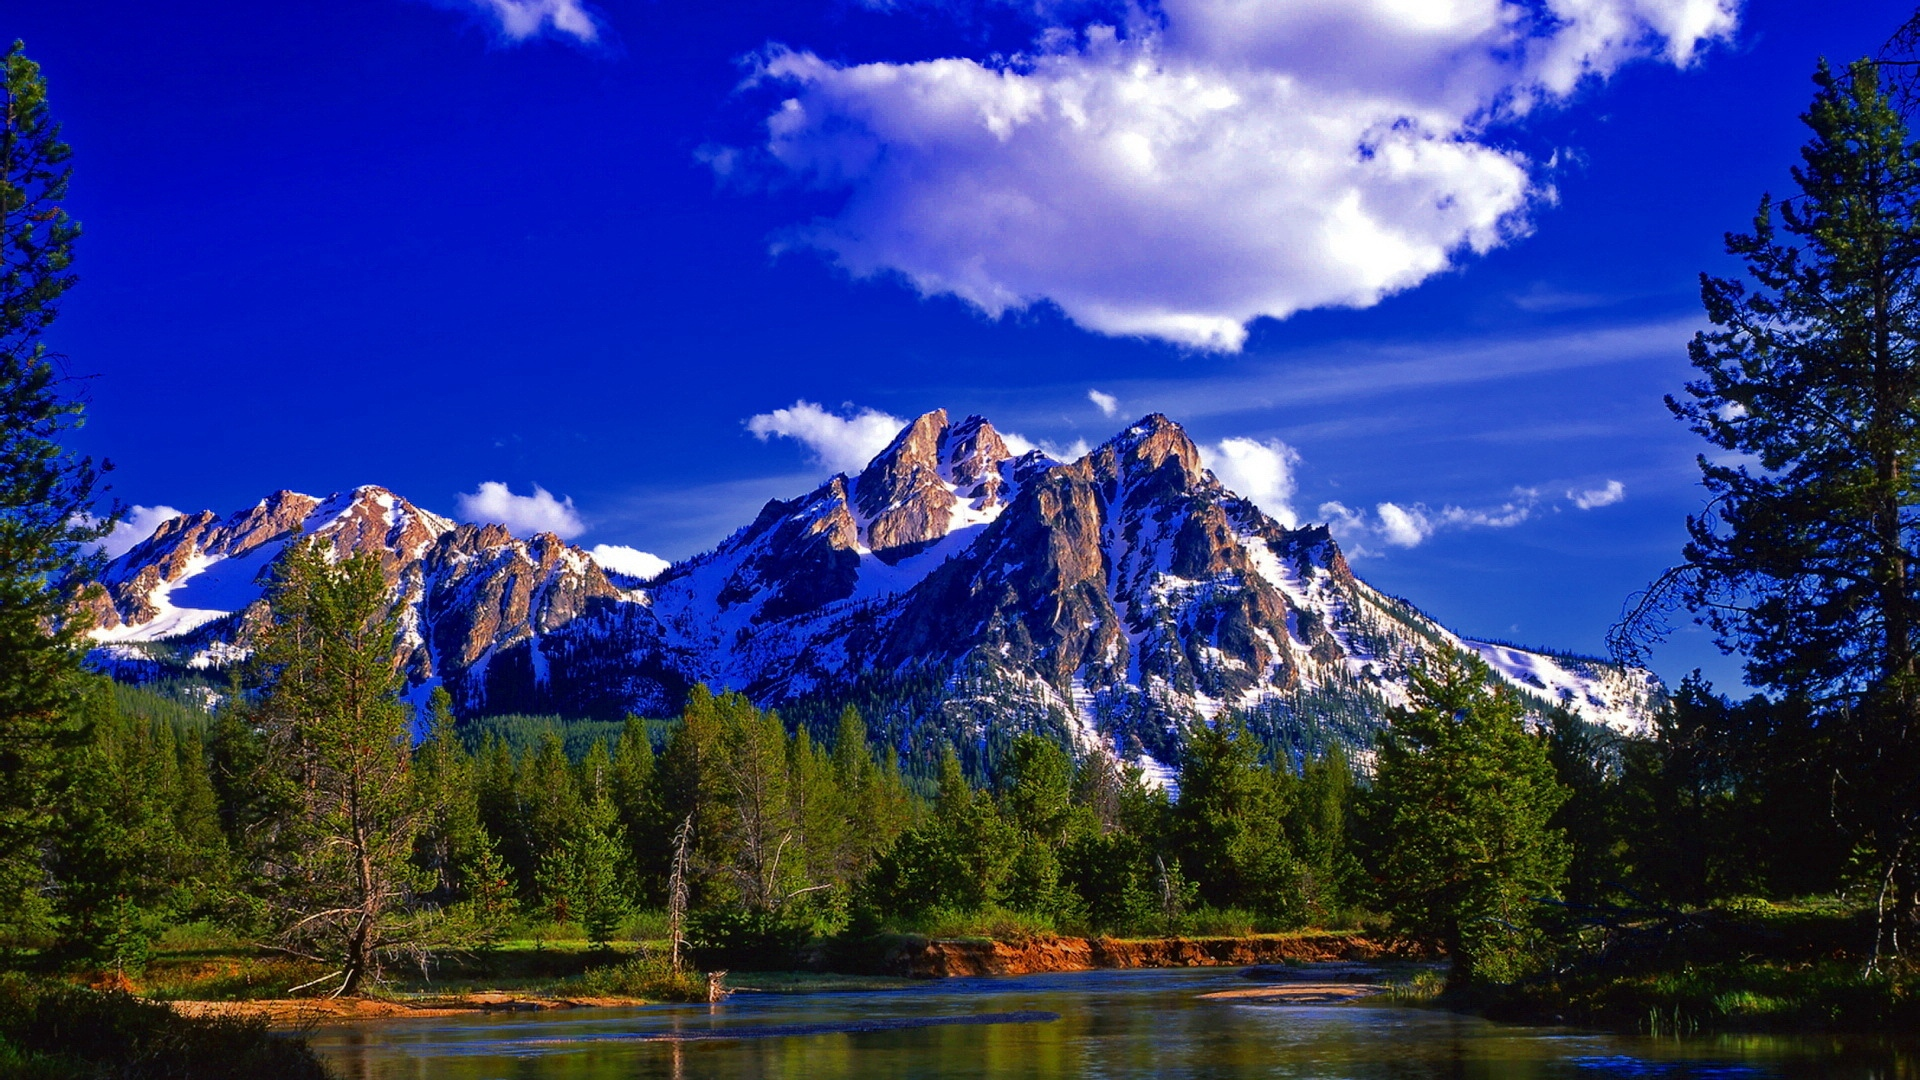 Summer Mountains Wallpapers Wallpaper Cave